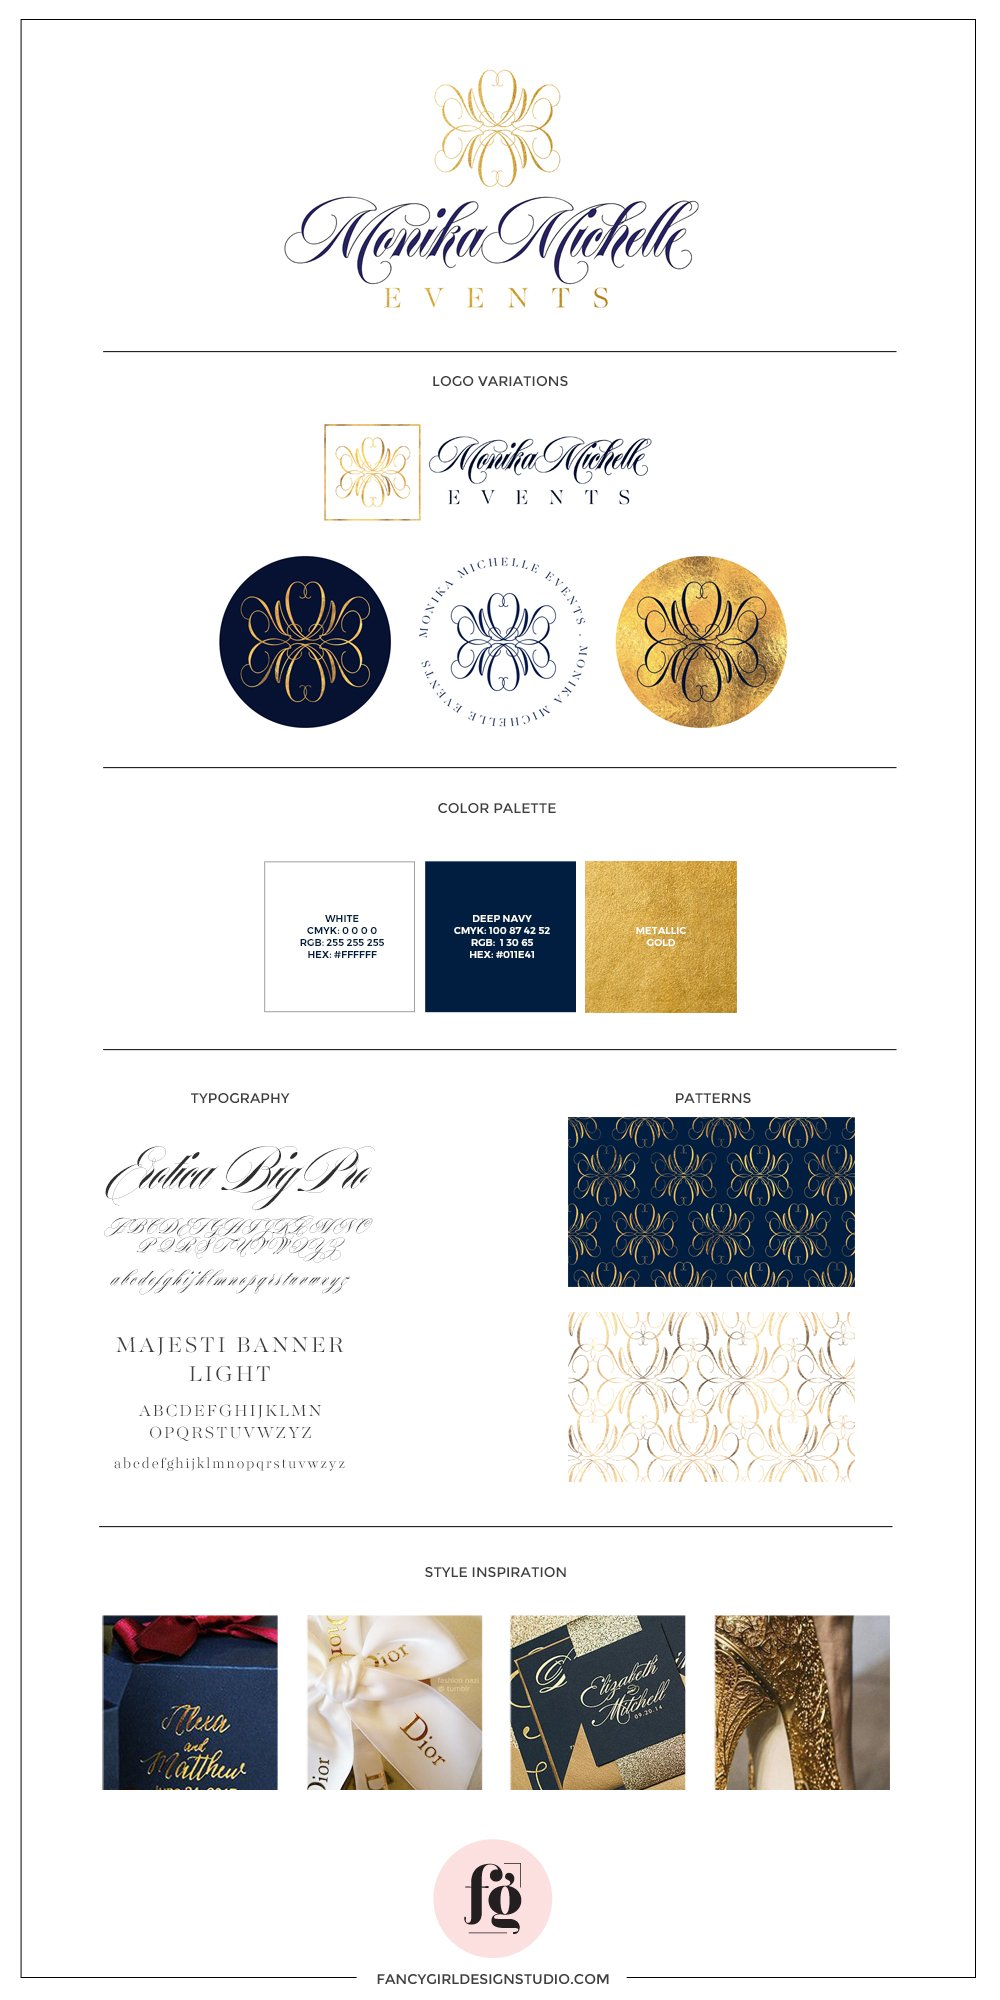 Monika Michelle Events Brand Guide by Fancy Girl Design Studio